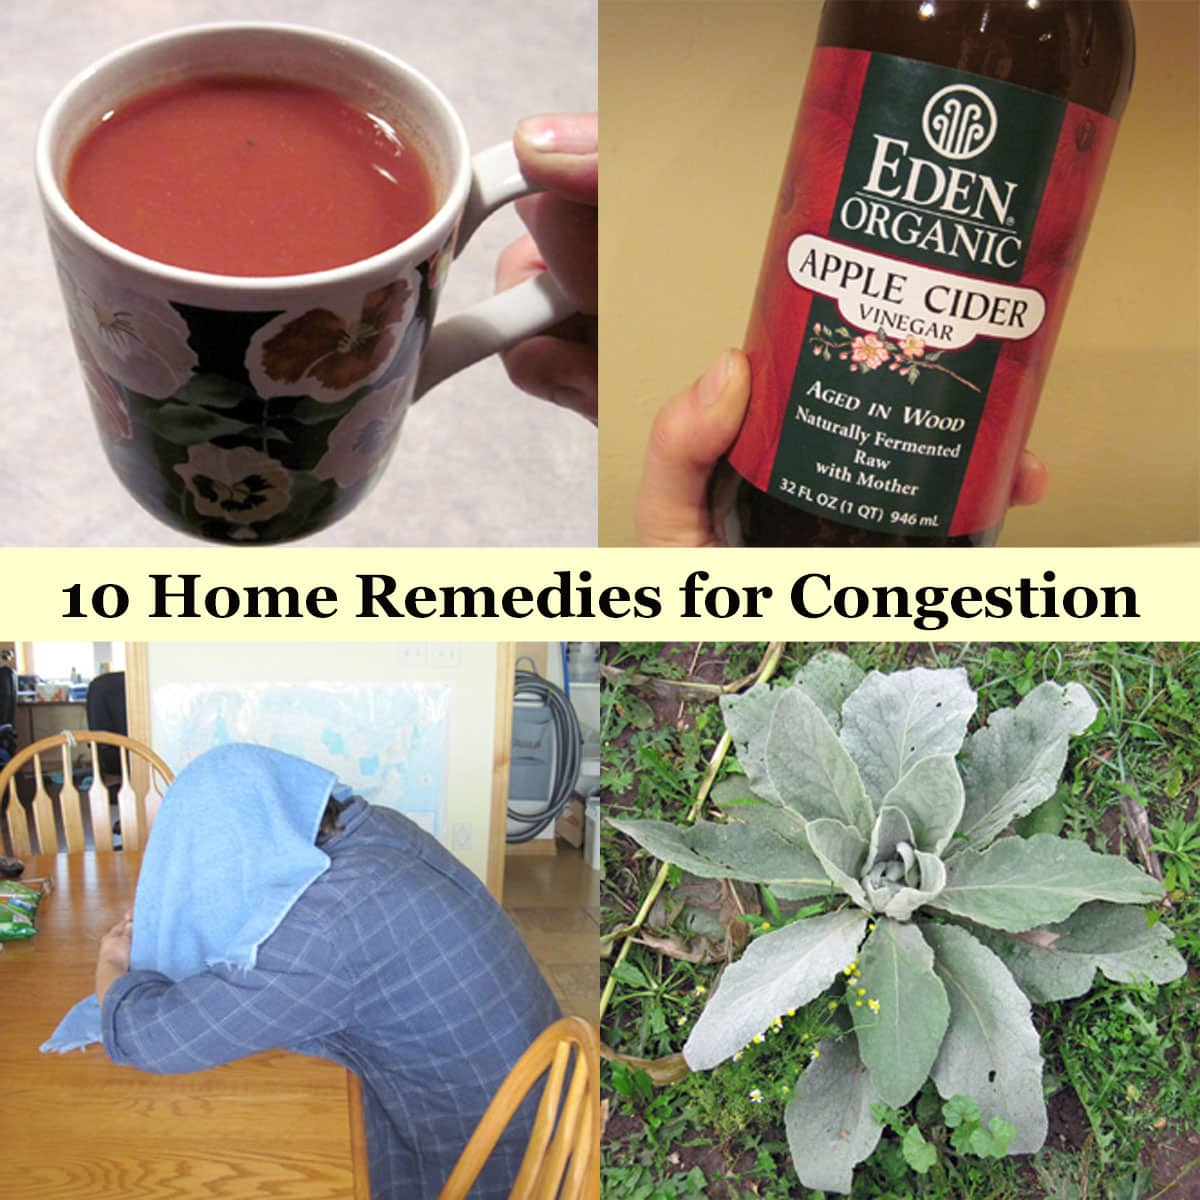 10 Home Remedies for Congestion